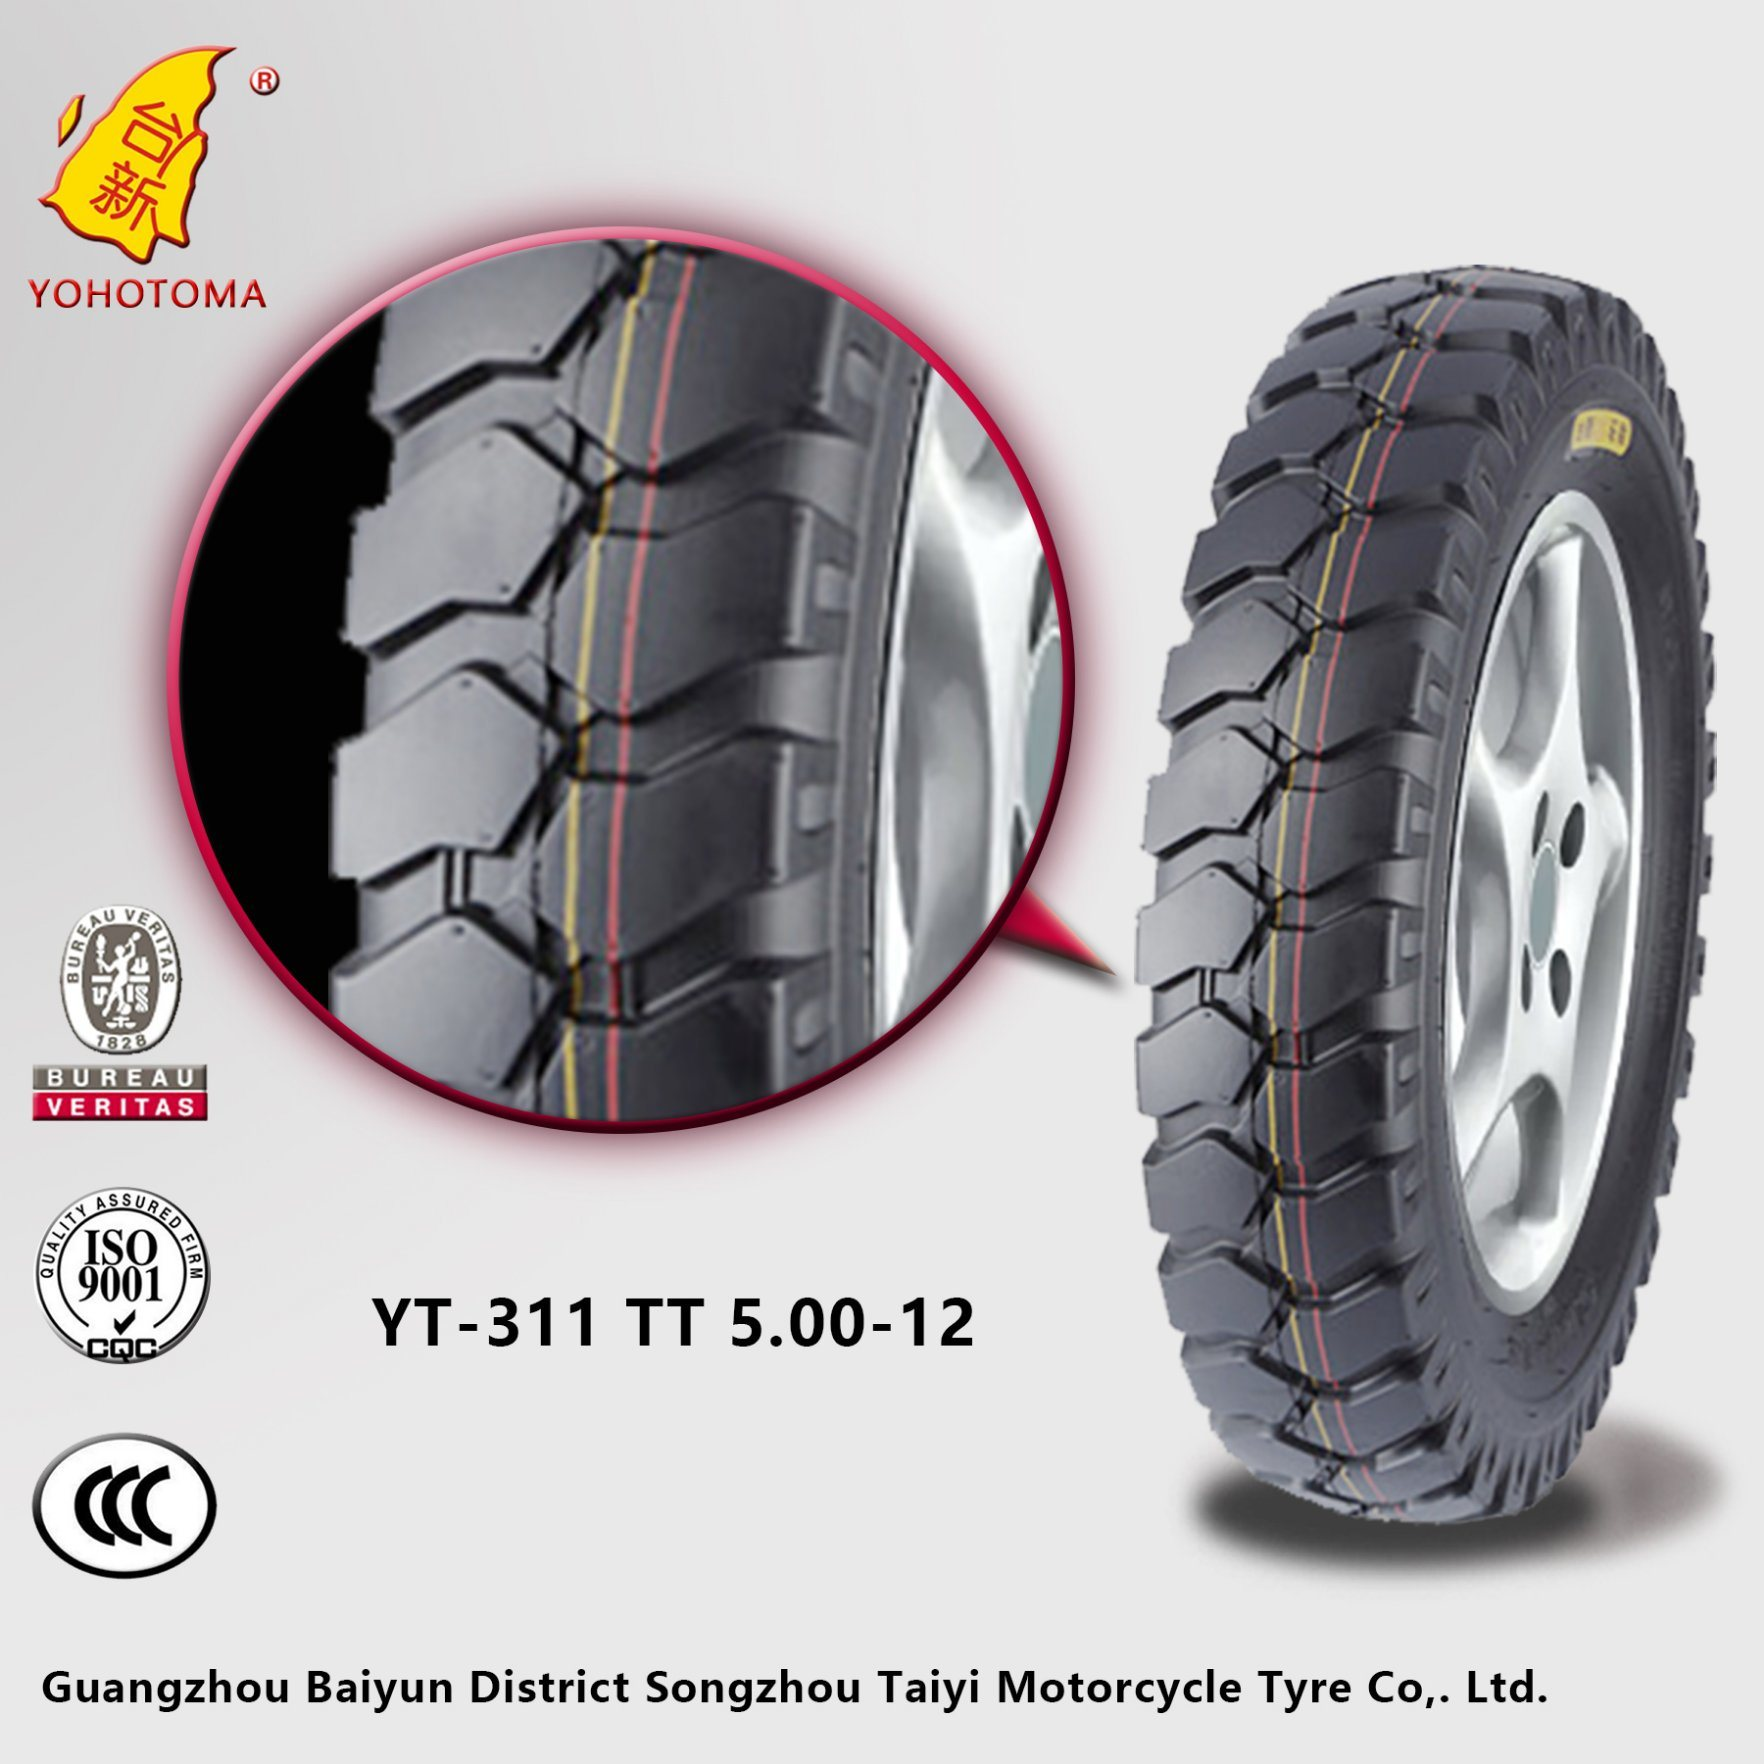 Factory Supply High Quality Tricycle Tire (YT7) 500-12 Yt-311 Tt